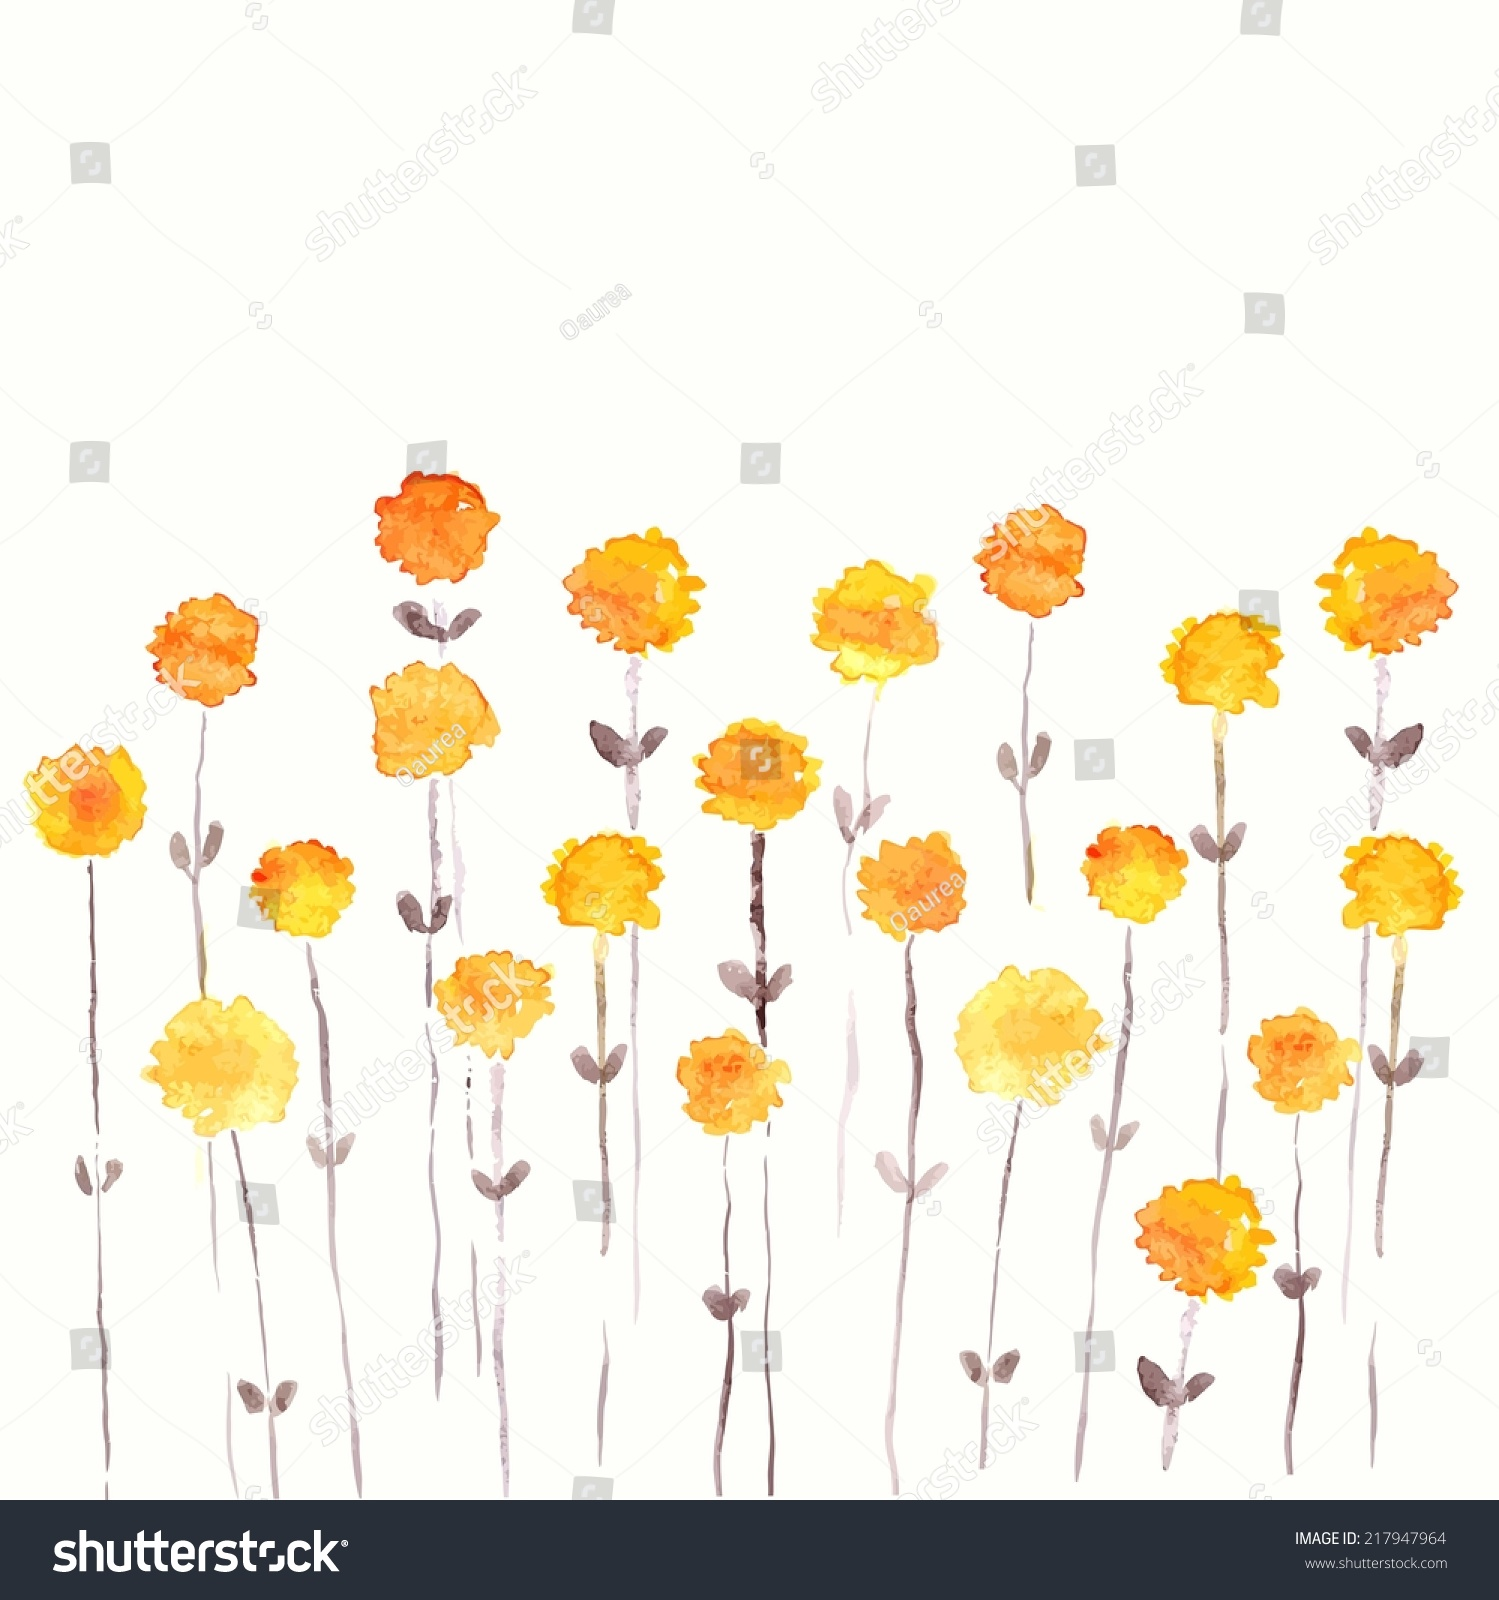 Dandelions Yellow Flowers Watercolor Floral Bouquet Stock Vector